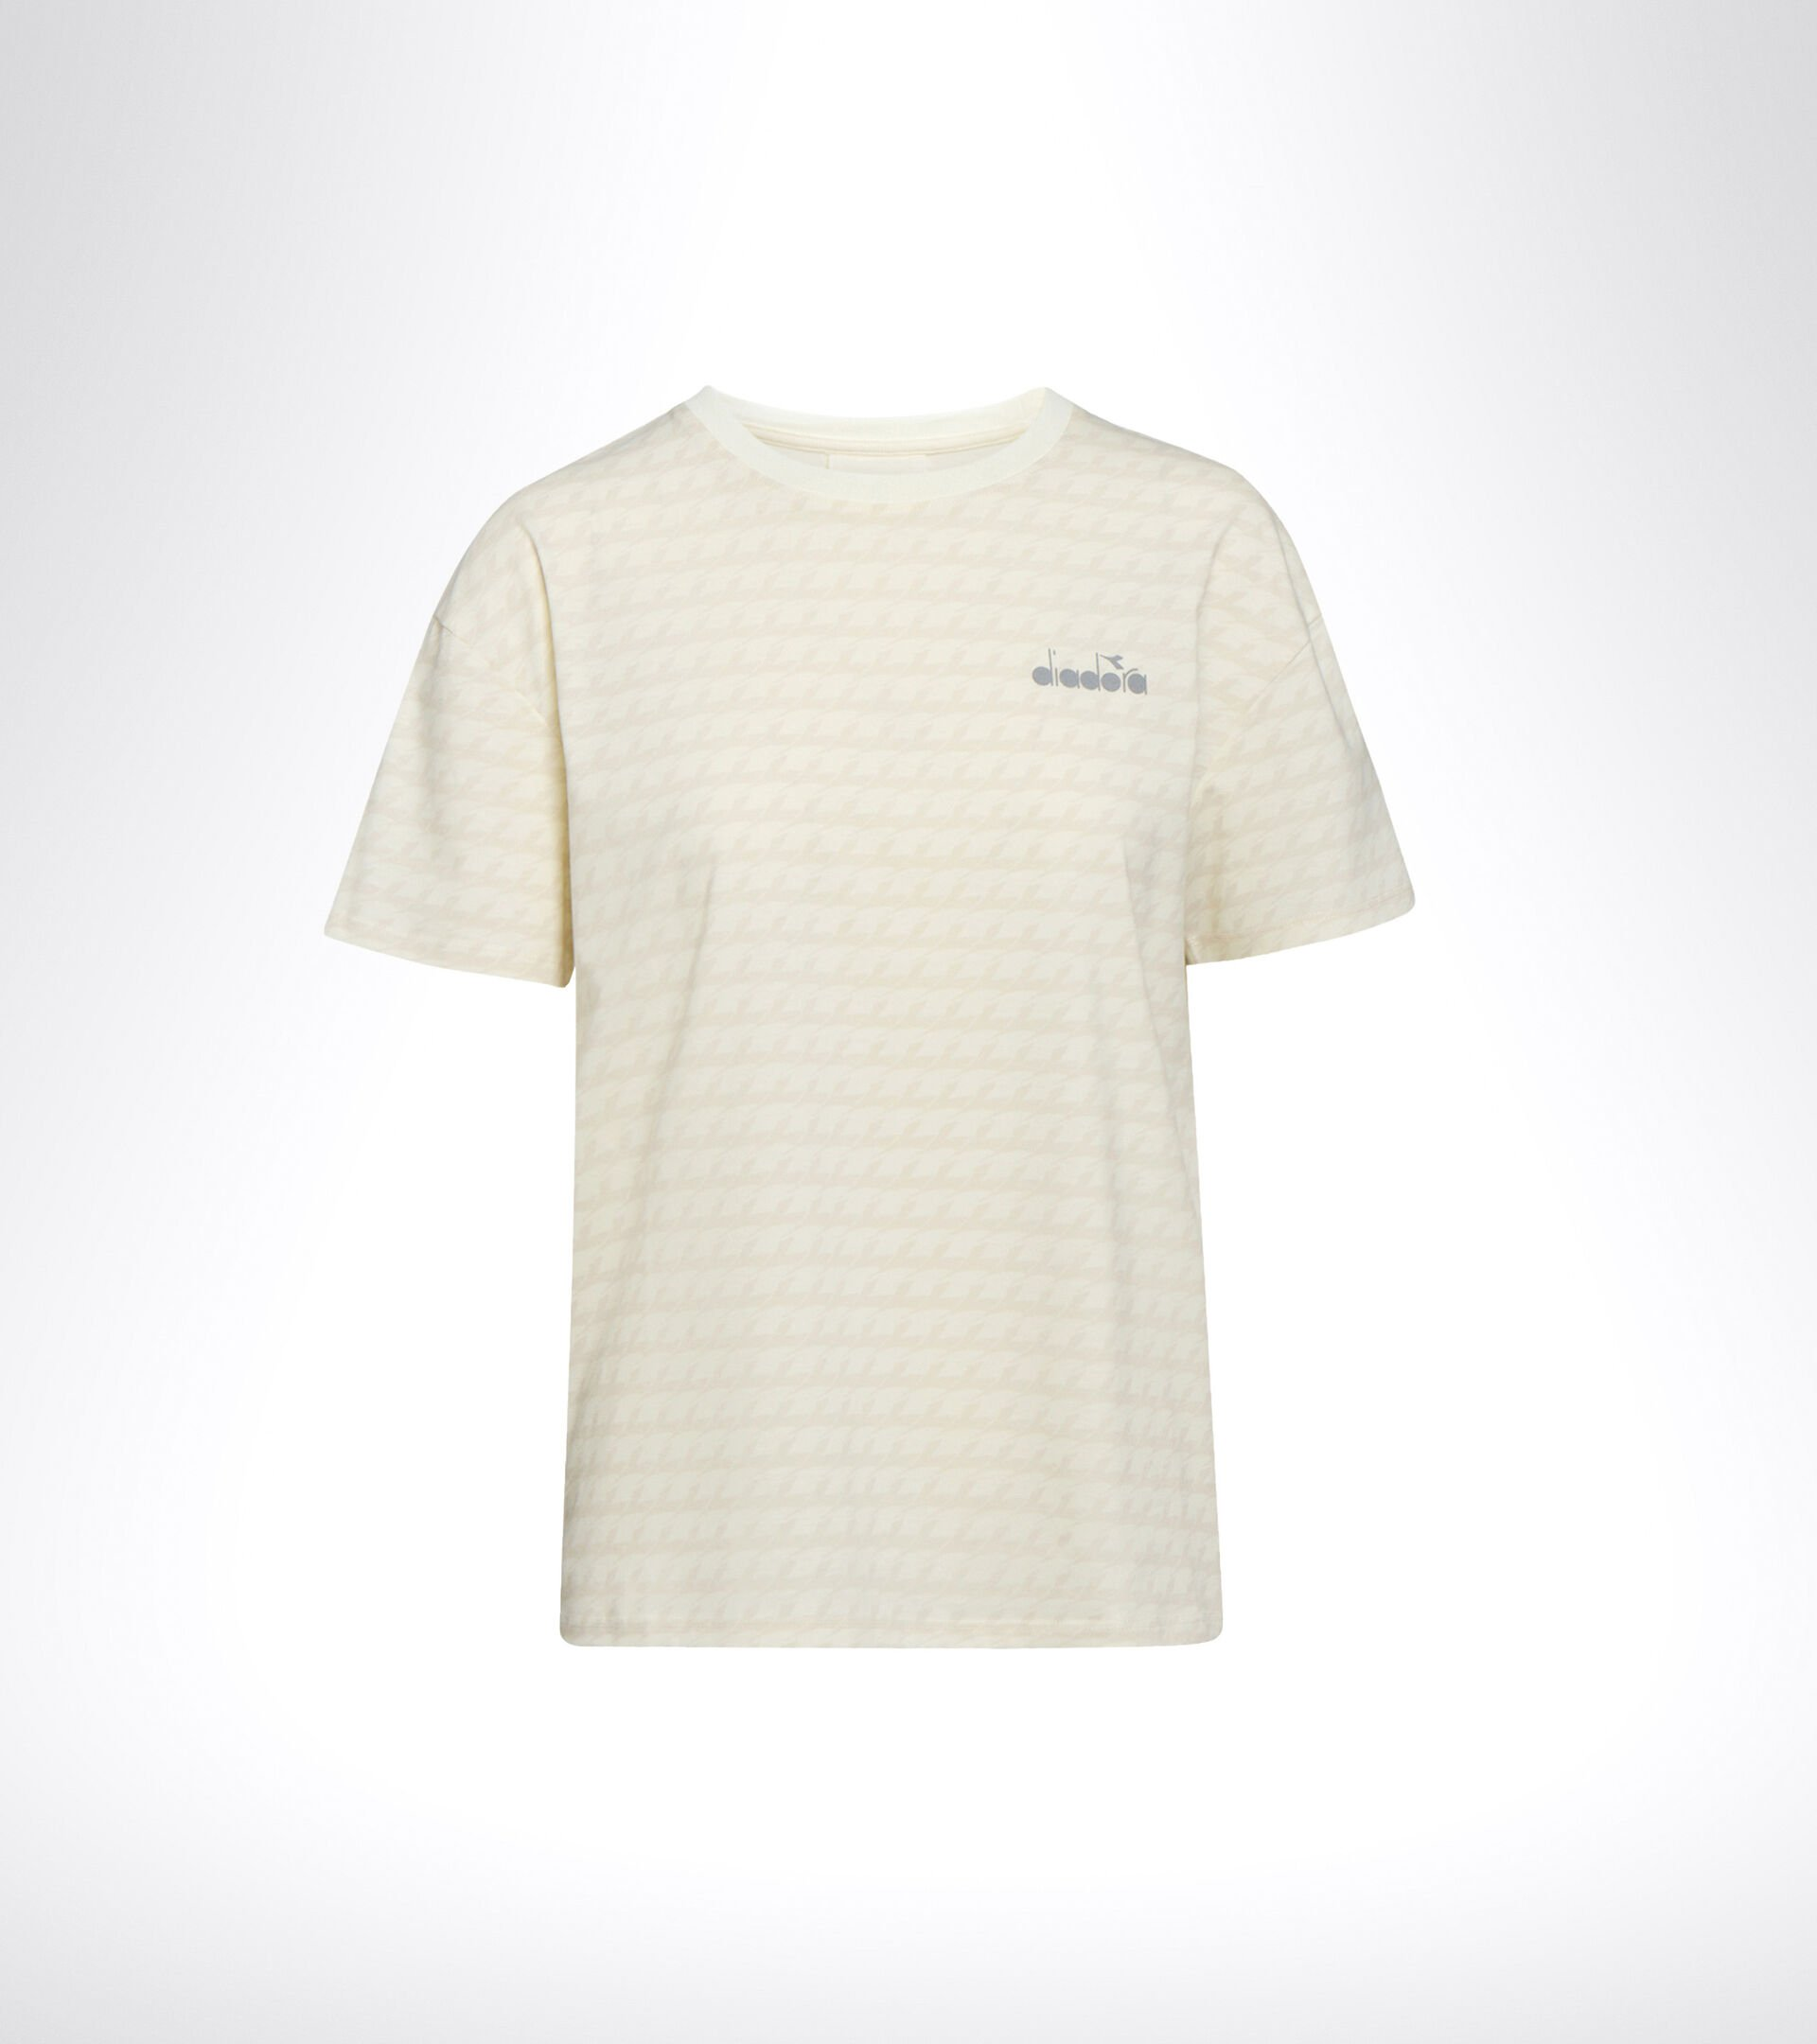 Apparel Sport DONNA L. SS T-SHIRT PLUS BE ONE ALL OVER WHISPER WHITE Diadora